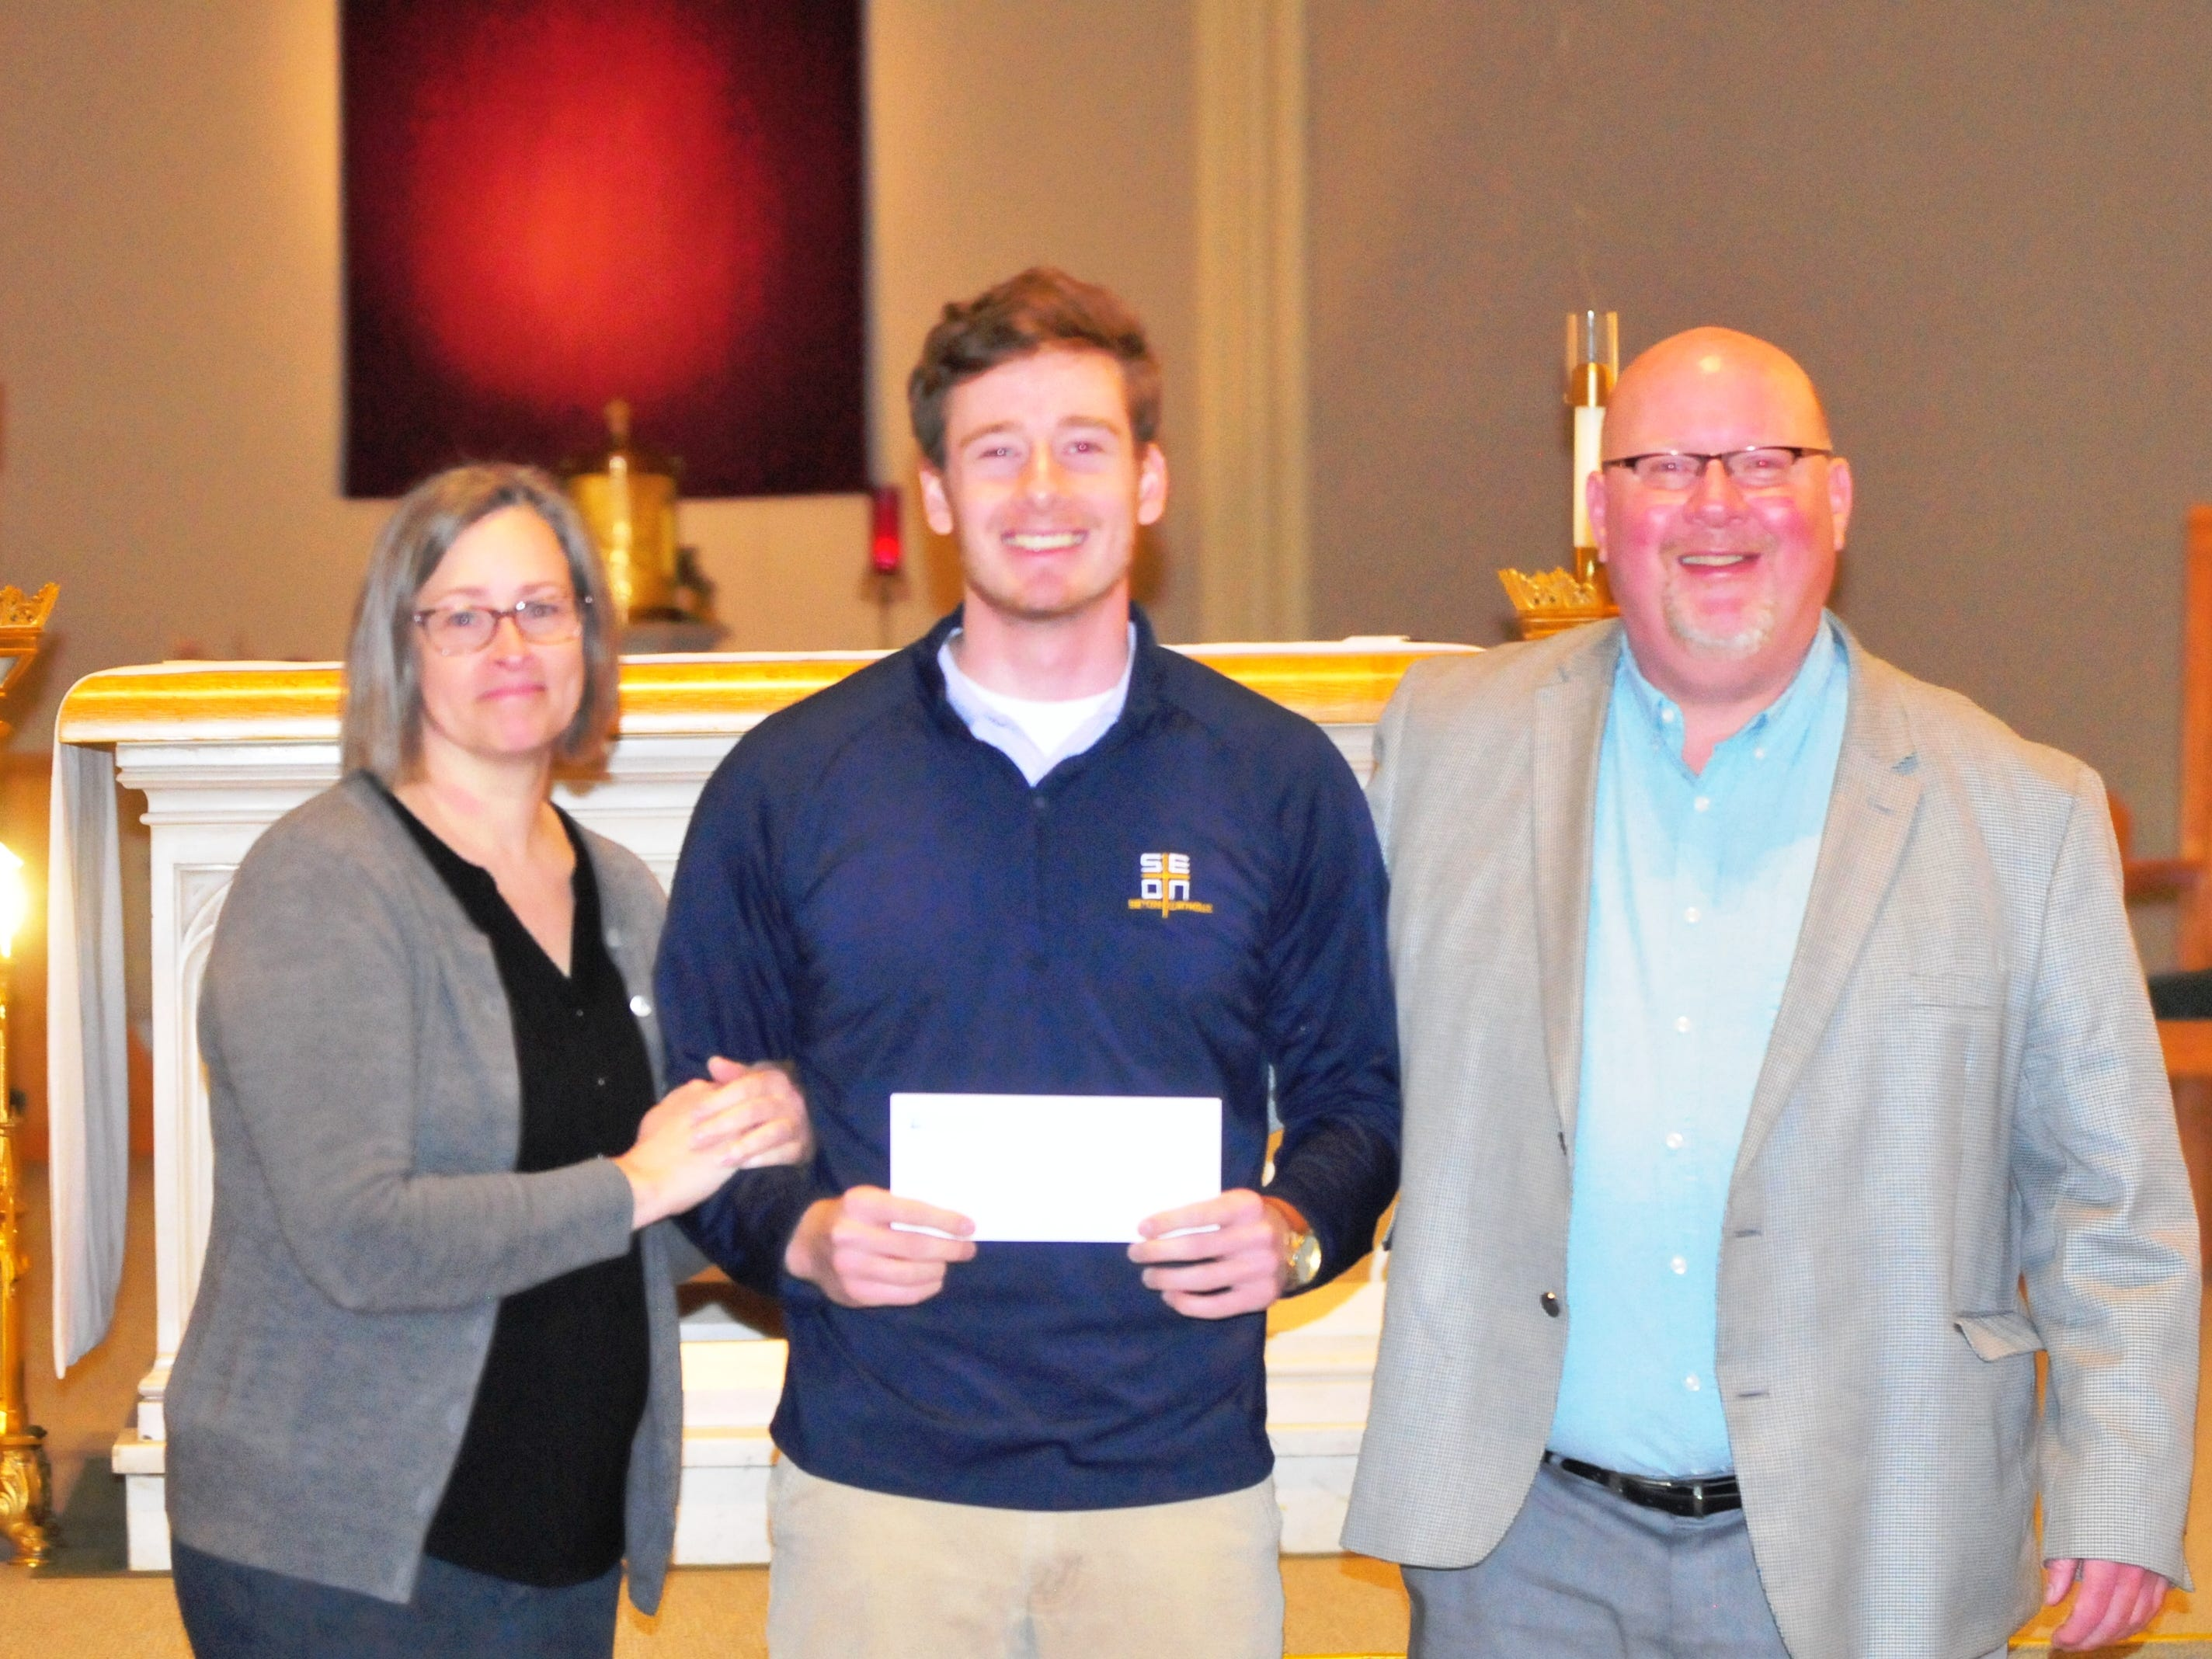 Seton Catholic senior Joseph Lahmann, center, with mother Margaret Rees Lahmann, left, and father Patrick Lahmann, after finding out Joseph won the Lilly Endowment Community Scholarship after morning mass at St. Andrew's Catholic Church in Richmond Tuesday, Dec. 11, 2018.